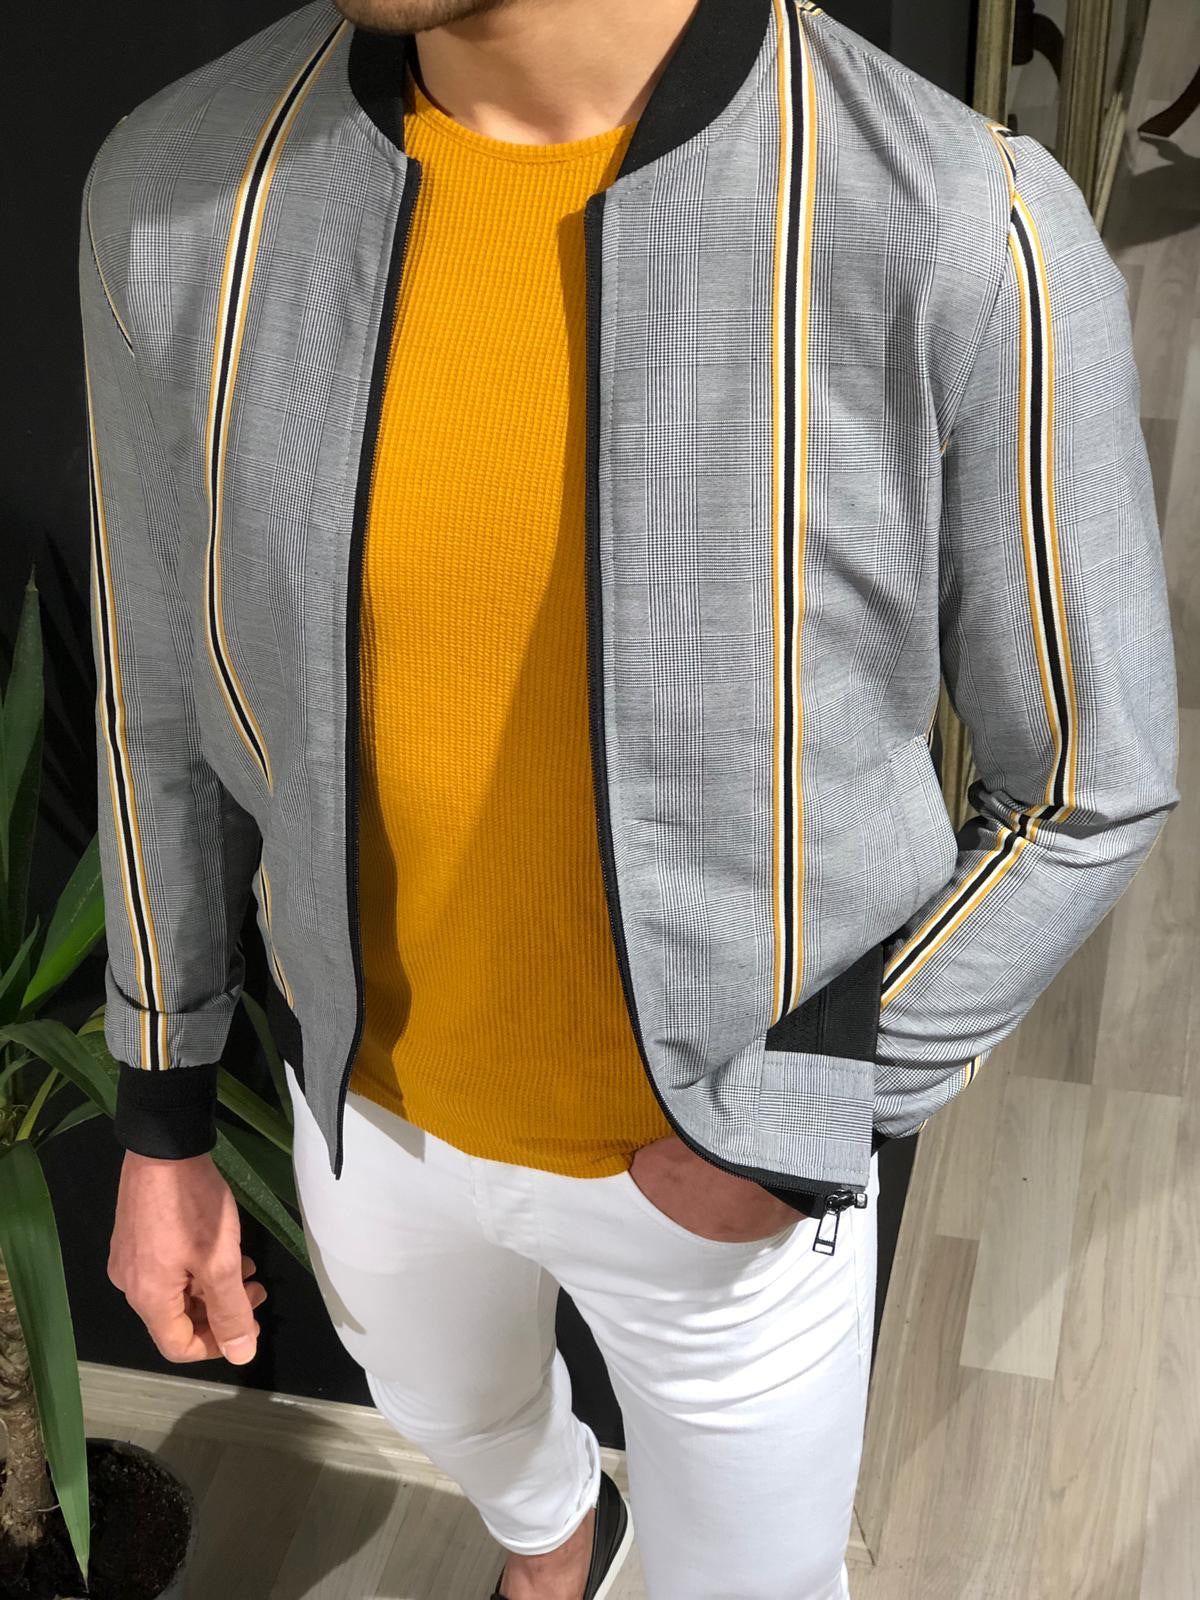 Faha Slim-Fit Colored Striped Jacket in Yellow